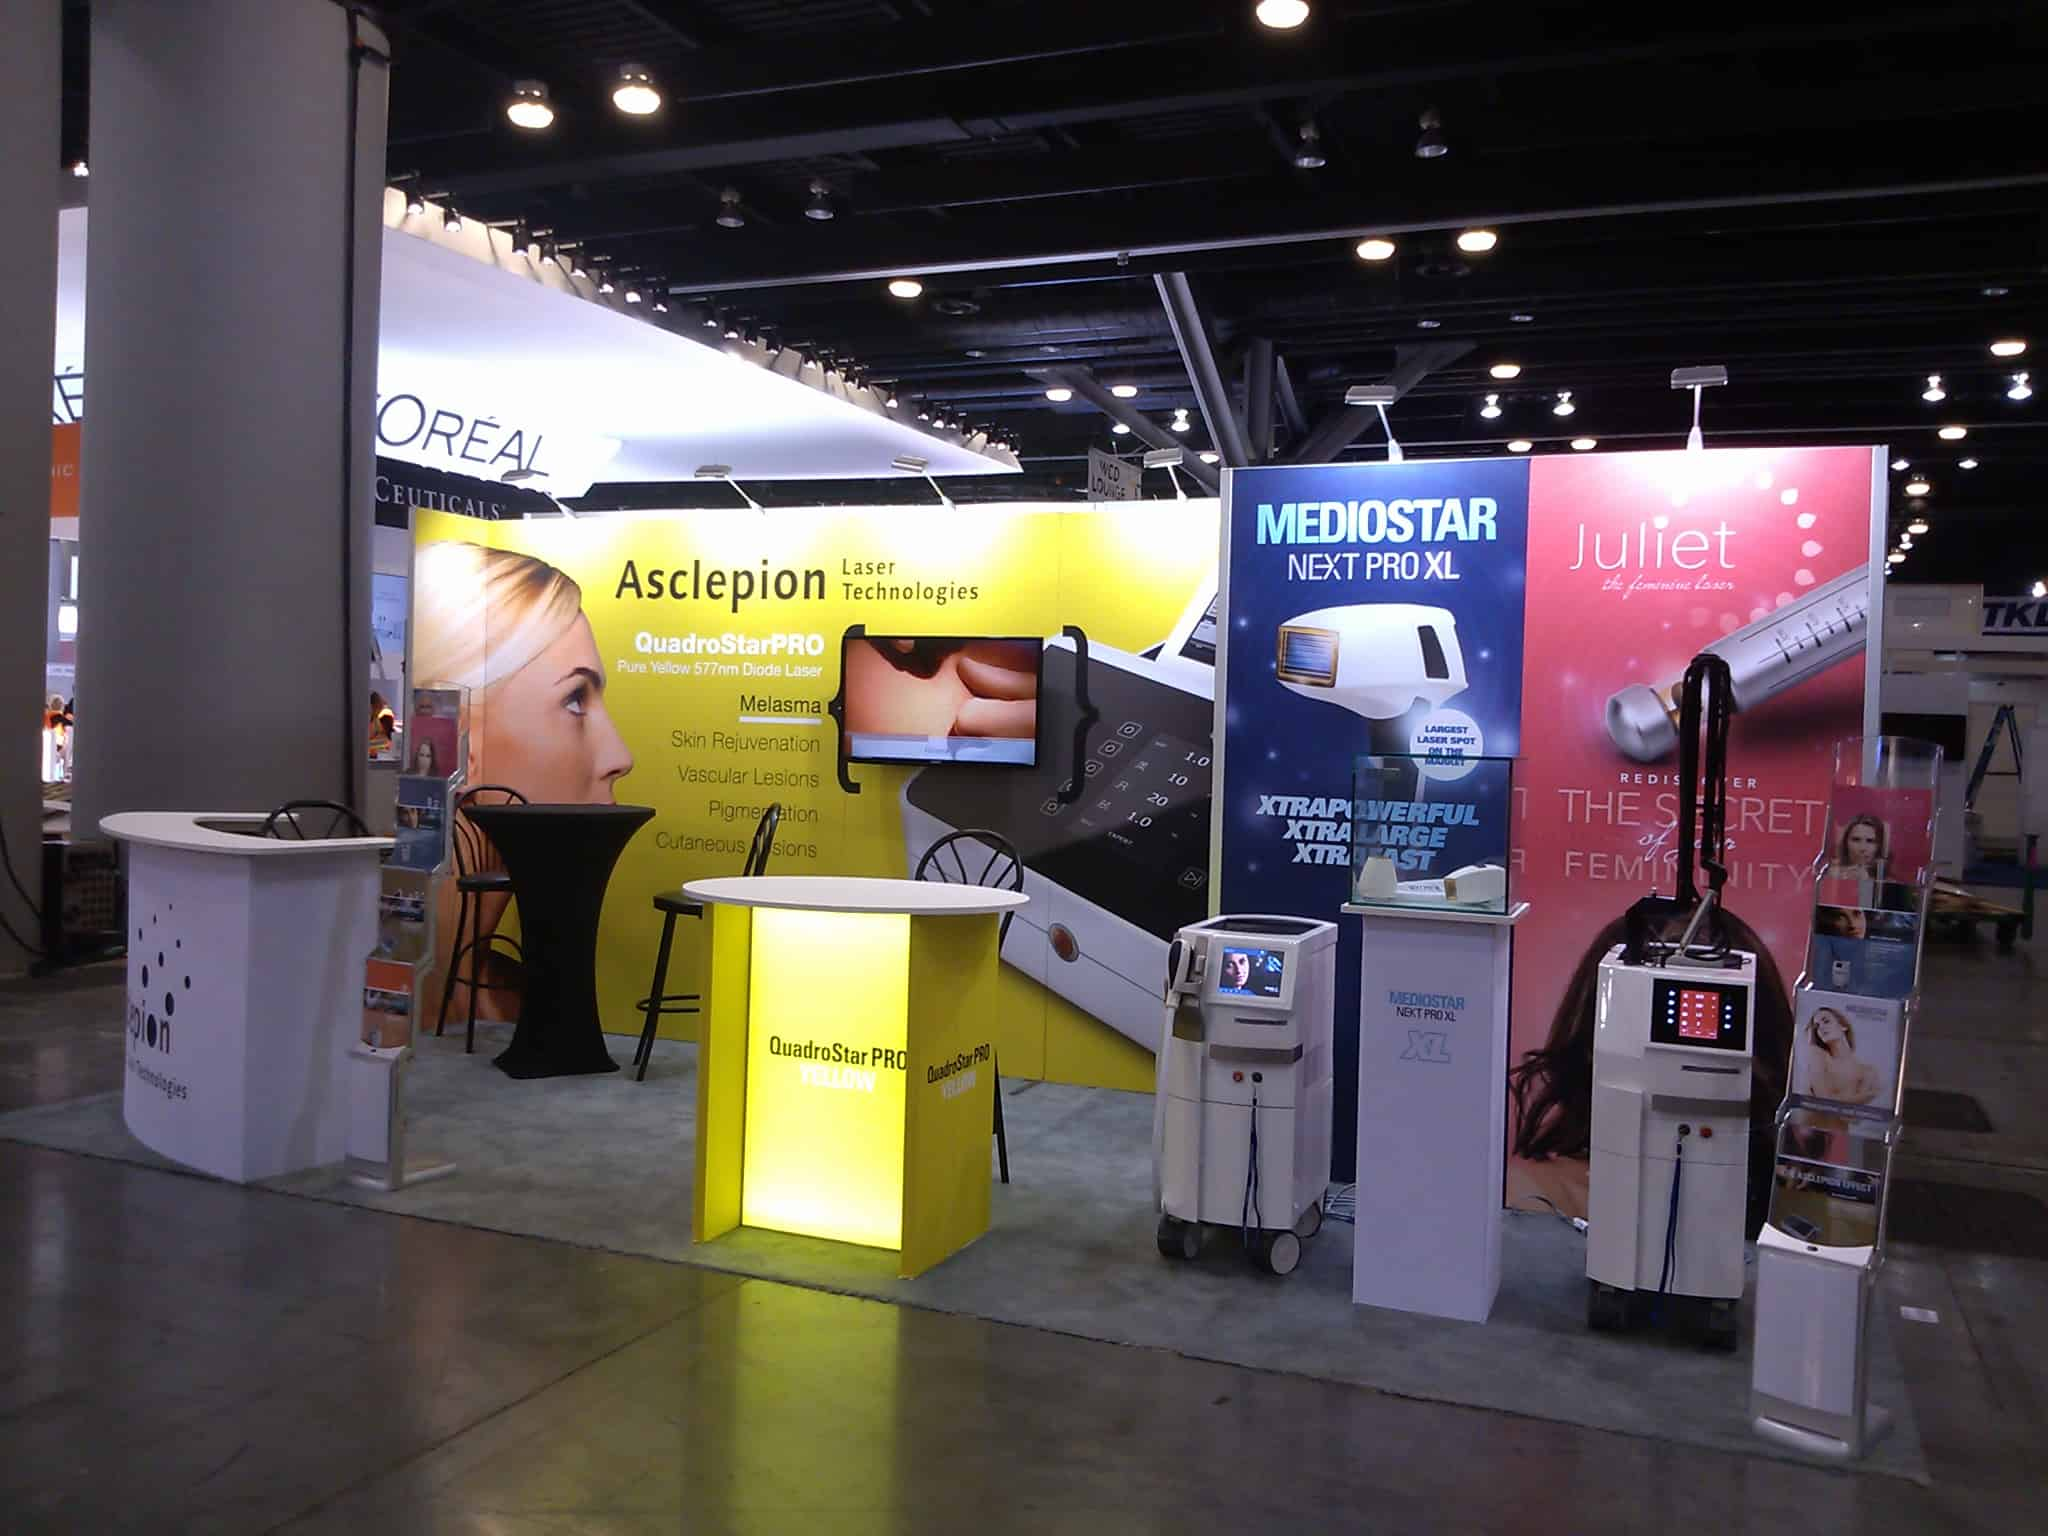 CoMotion Exhibits Events Inc is a full-service trade show